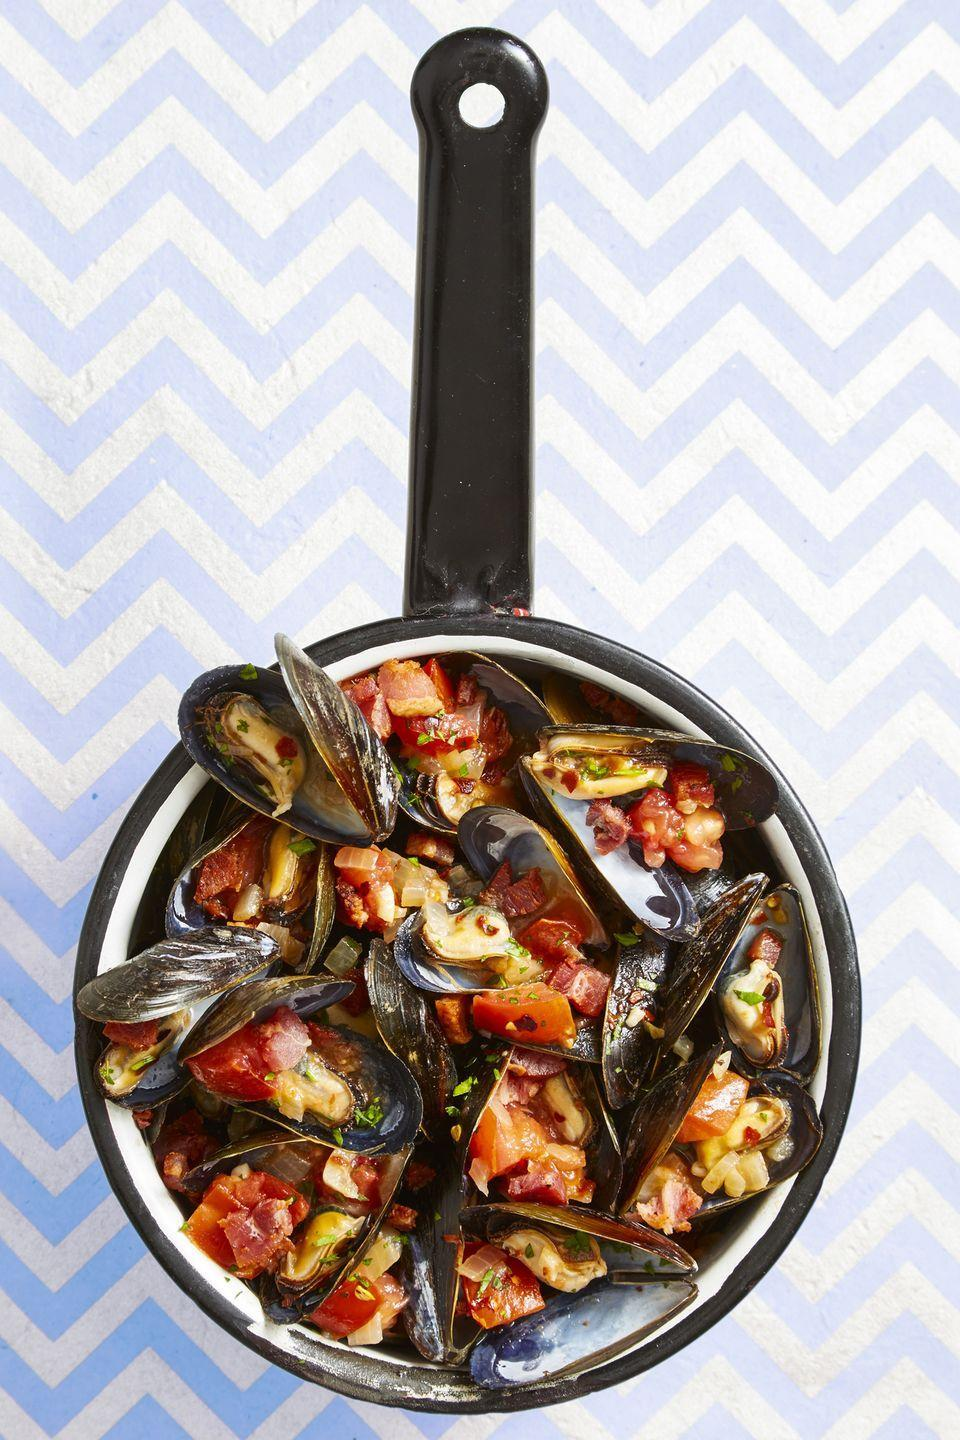 """<p>We bet you never thought of tossing a batch of frozen French fries into a pot of mussels ... until now.</p><p><em><a href=""""https://www.goodhousekeeping.com/food-recipes/easy/a44750/spicy-italian-mussels-frites-recipe/"""" rel=""""nofollow noopener"""" target=""""_blank"""" data-ylk=""""slk:Get the recipe for Spicy Italian Mussels and &quot;Frites&quot; »"""" class=""""link rapid-noclick-resp"""">Get the recipe for Spicy Italian Mussels and """"Frites"""" »</a></em></p>"""